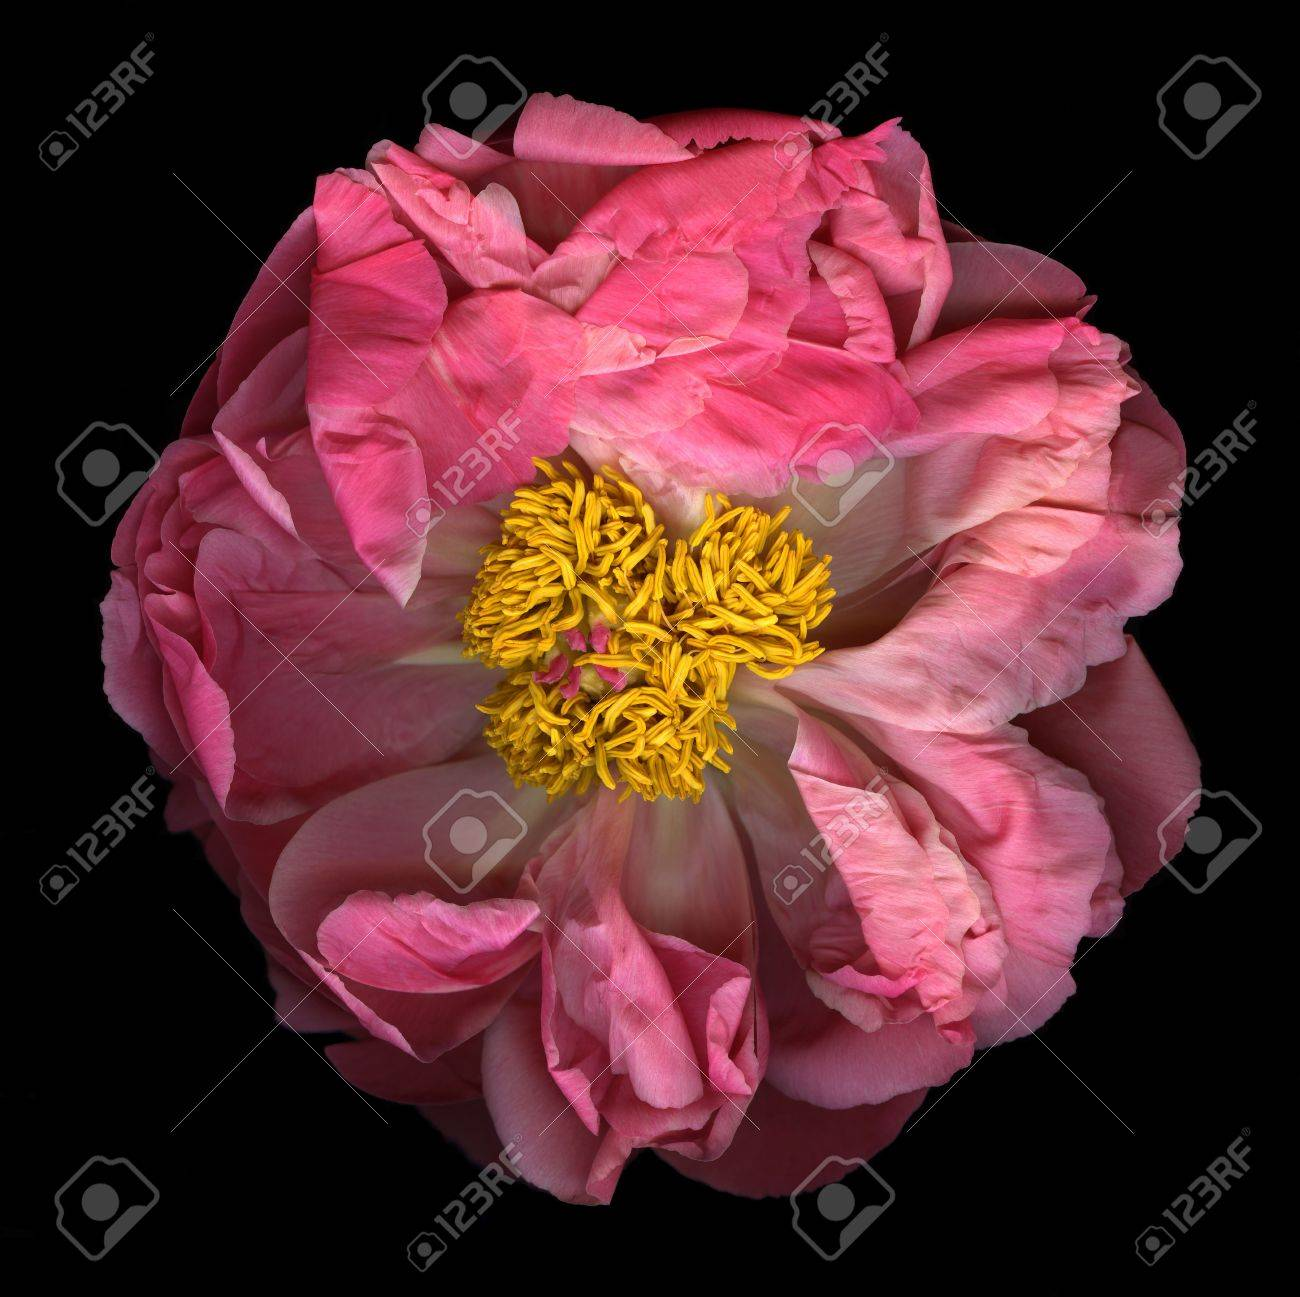 Pink peony in full bloom isolated on black background Stock Photo - 5056100